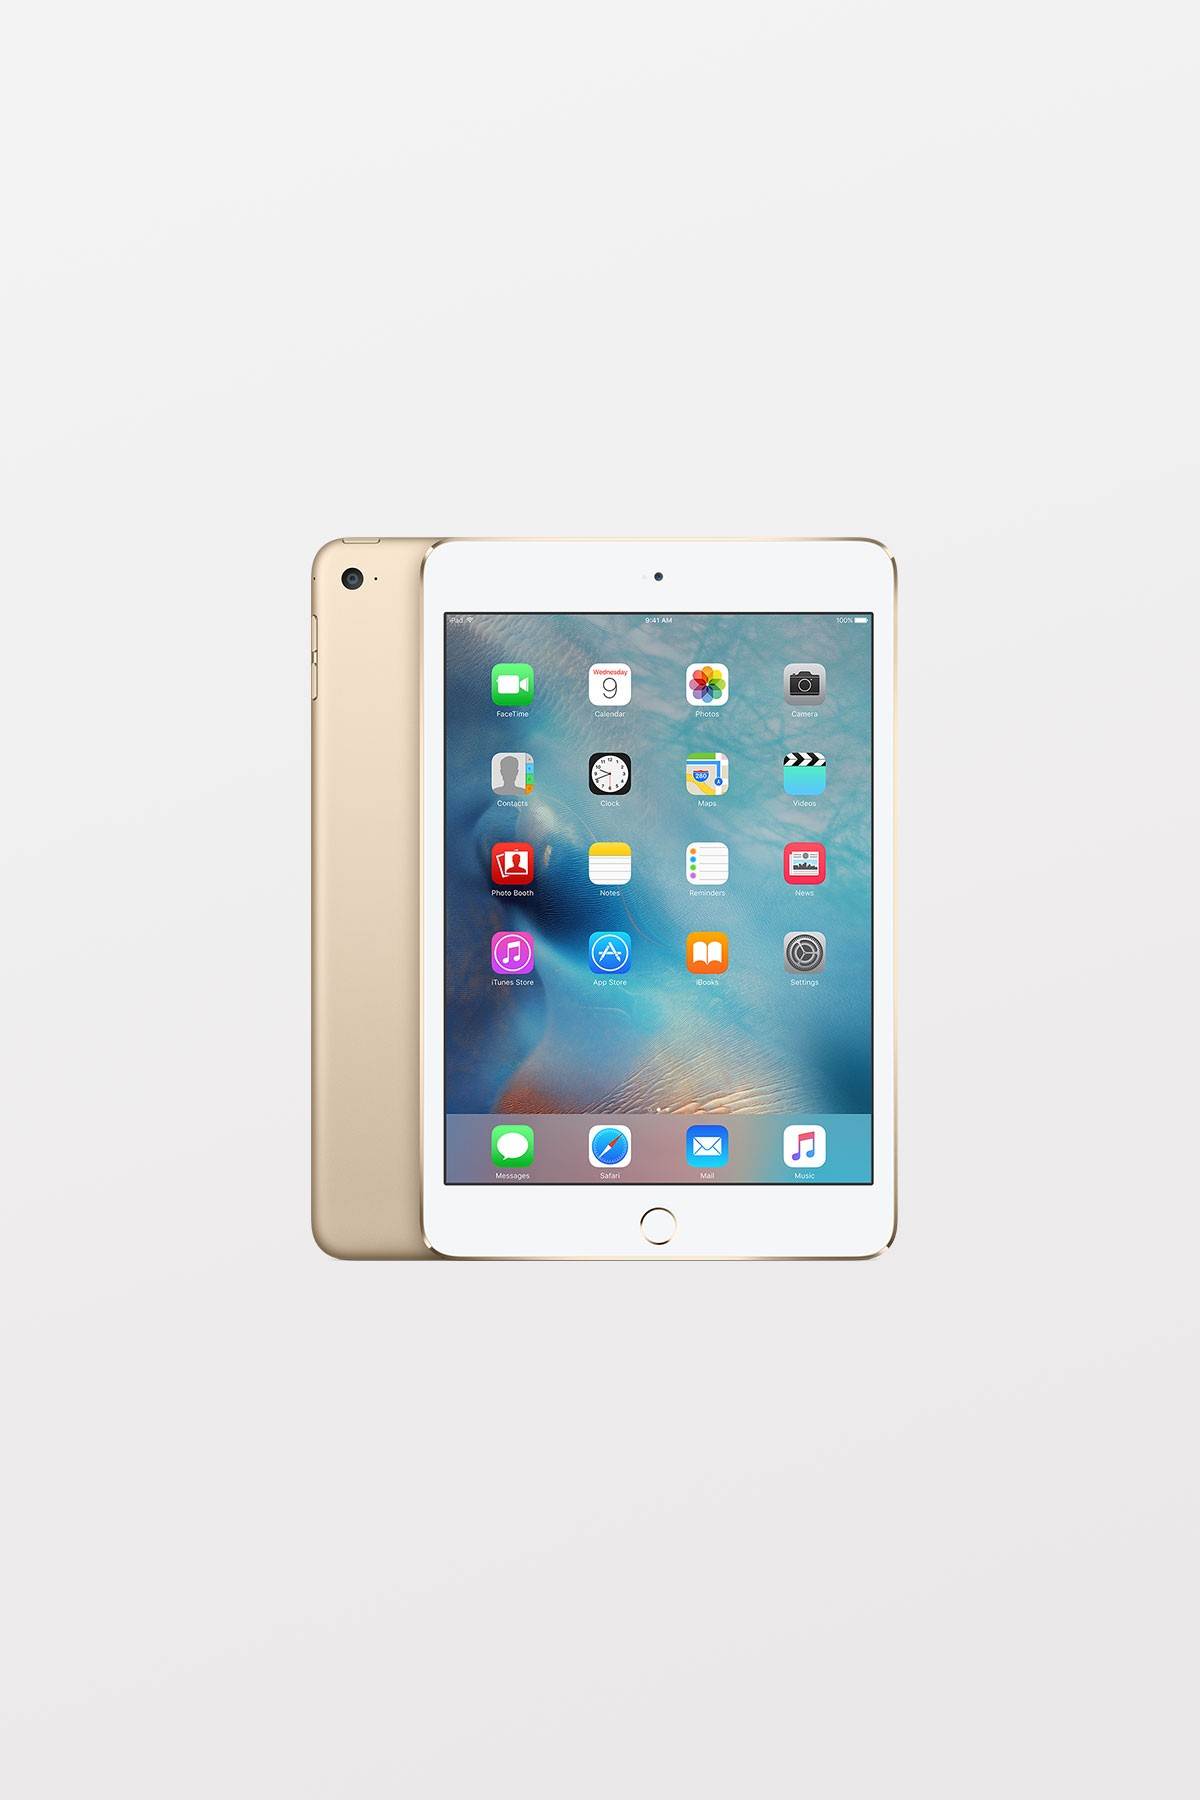 EOL Apple iPad mini 3 128GB Wi-Fi + Cellular  - Gold